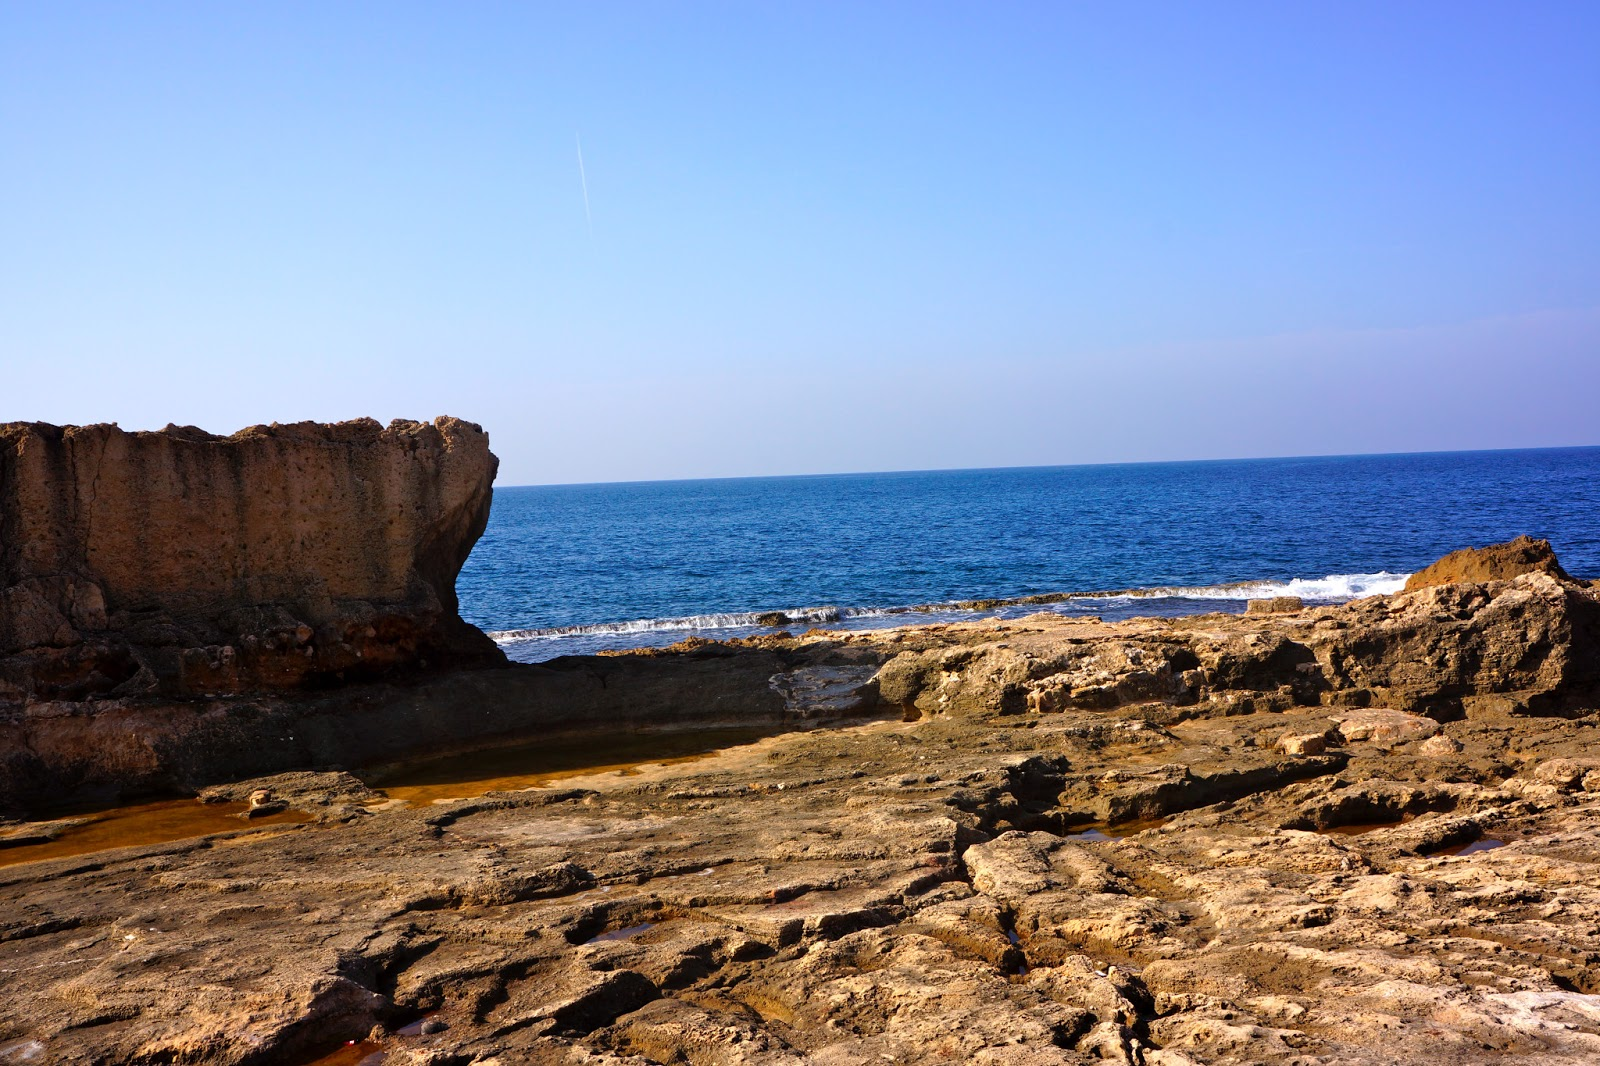 Picture of the phoenician wall in the coastal town of Batroun in Lebanon.